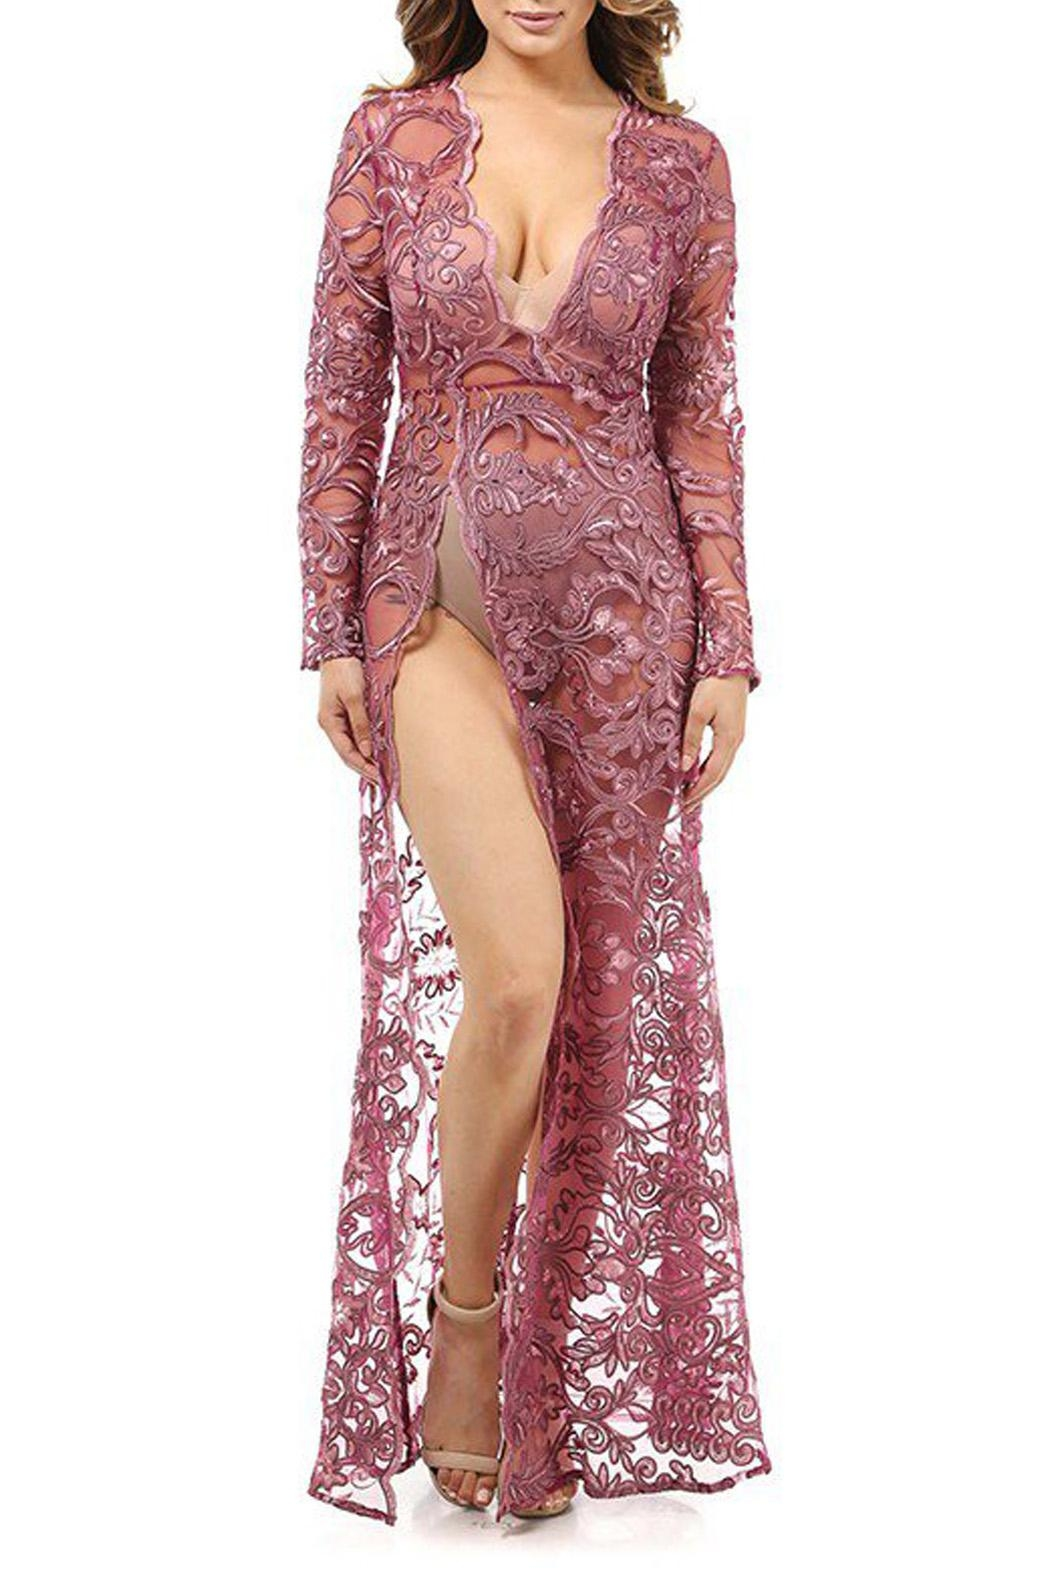 K too Embroidered Sheer Gown - Front Full Image